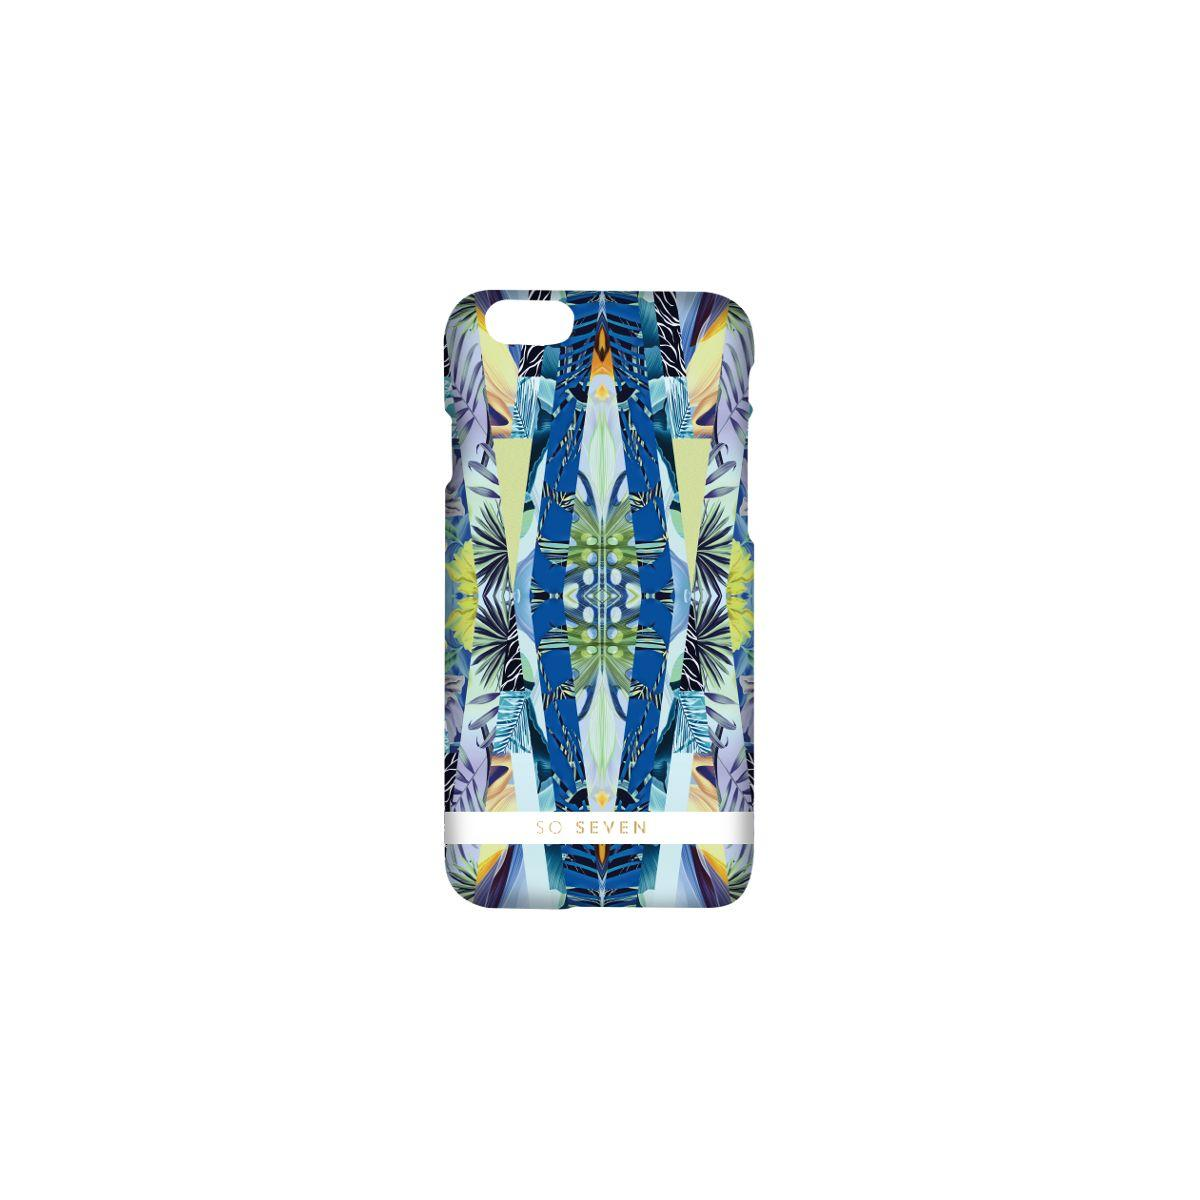 Coque so seven coque miami dark blue iphone 7 - 10% de remise imm�diate avec le code : d